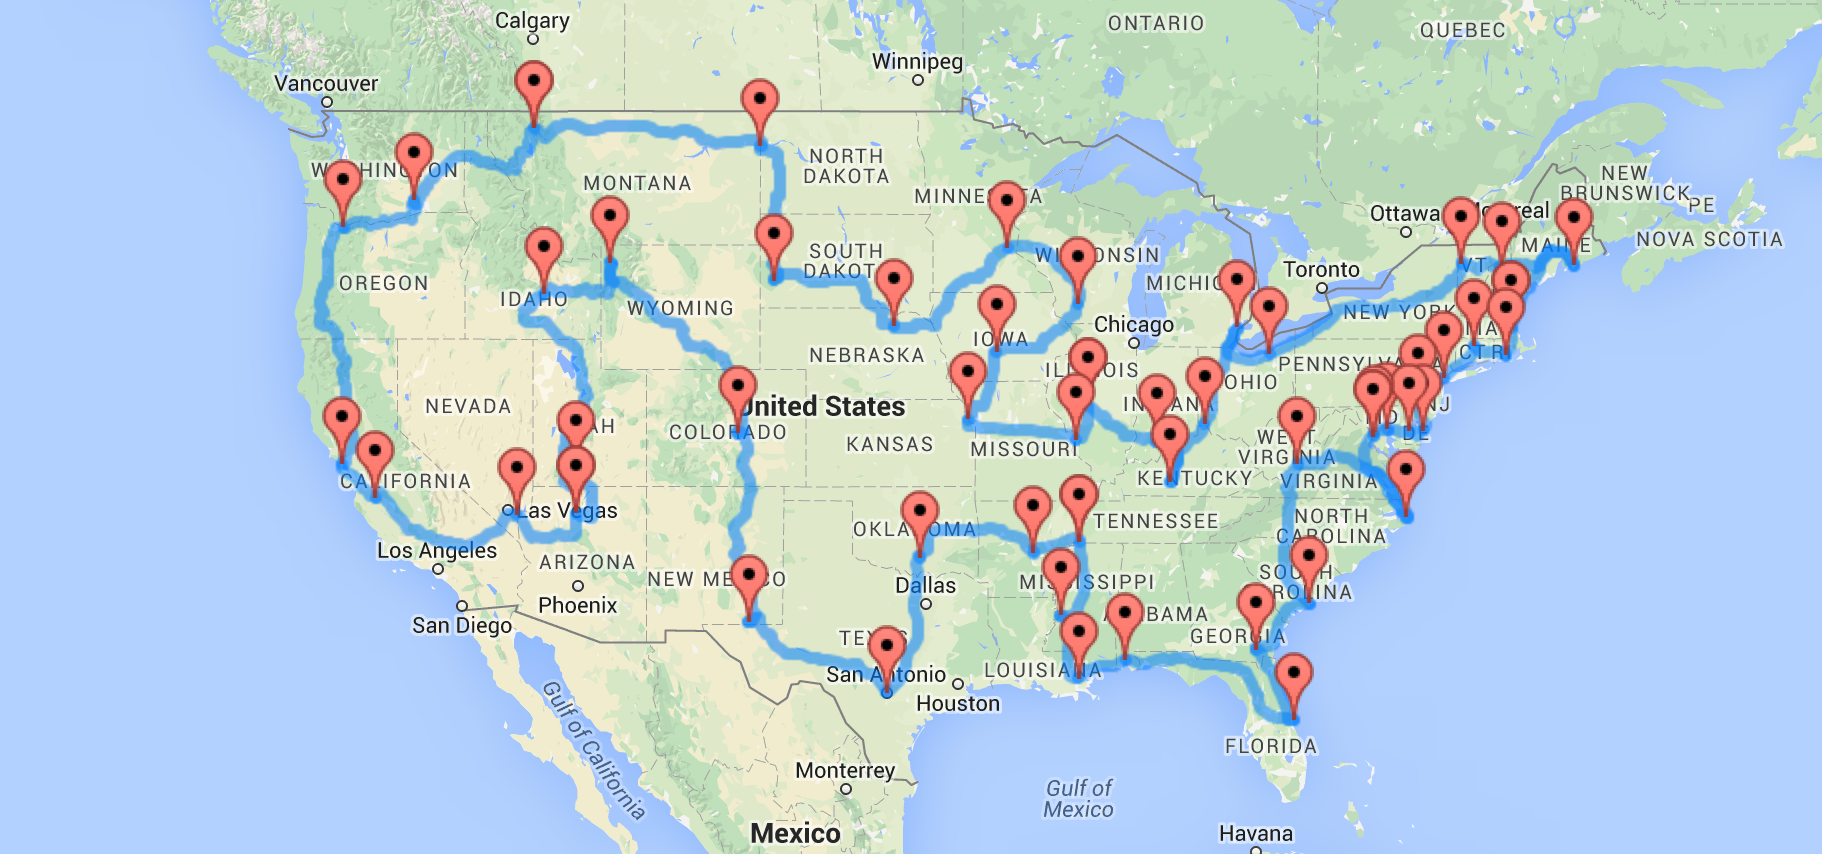 A Map Of The Optimal United States Road Trip That Hits